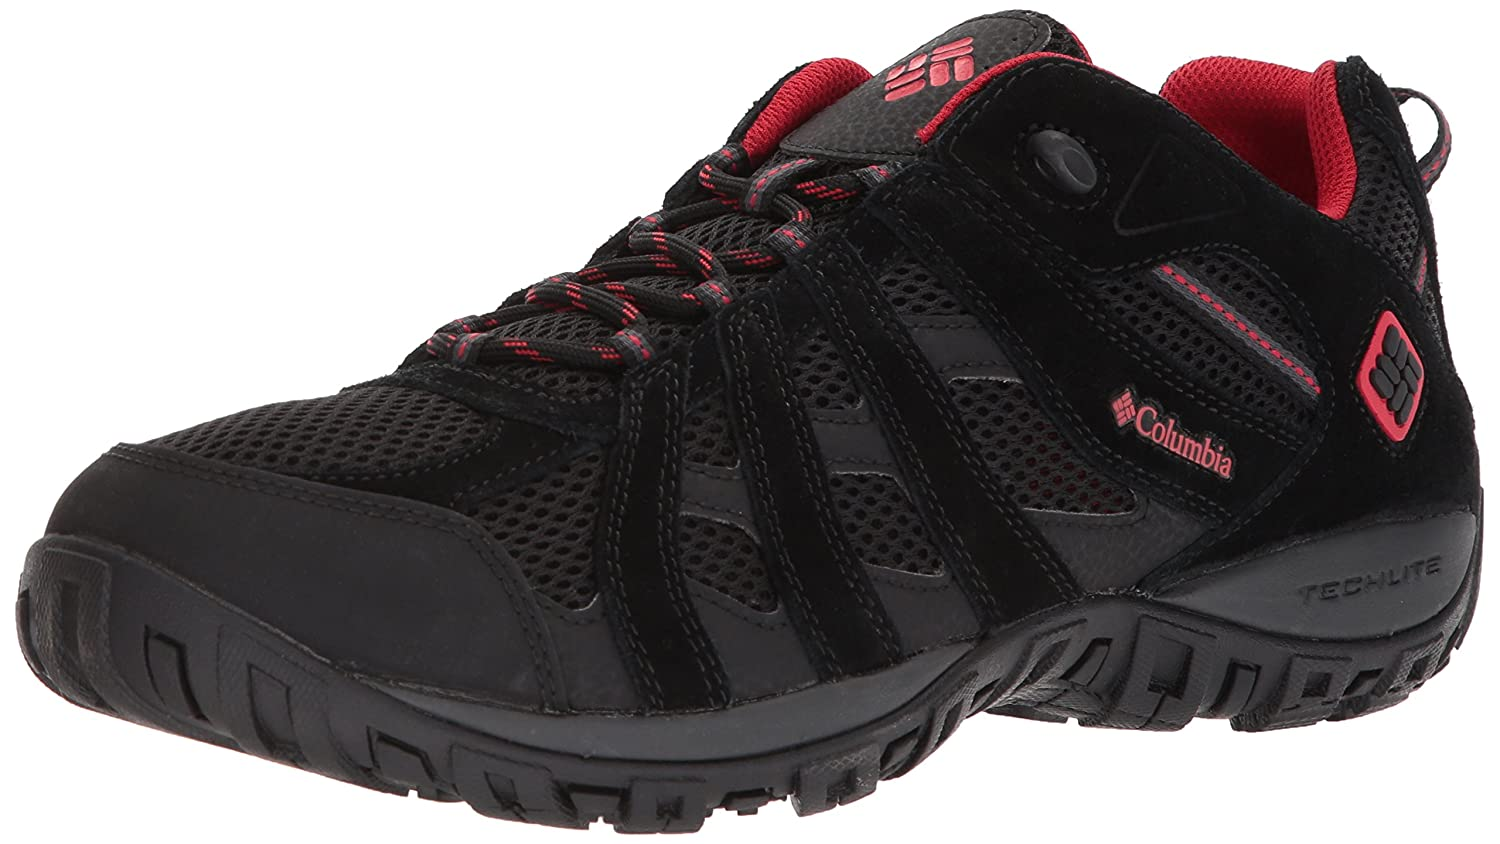 Columbia Men's Redmond Hiking Boot B073WFKG5J 8 W US|Black, Mountain Red